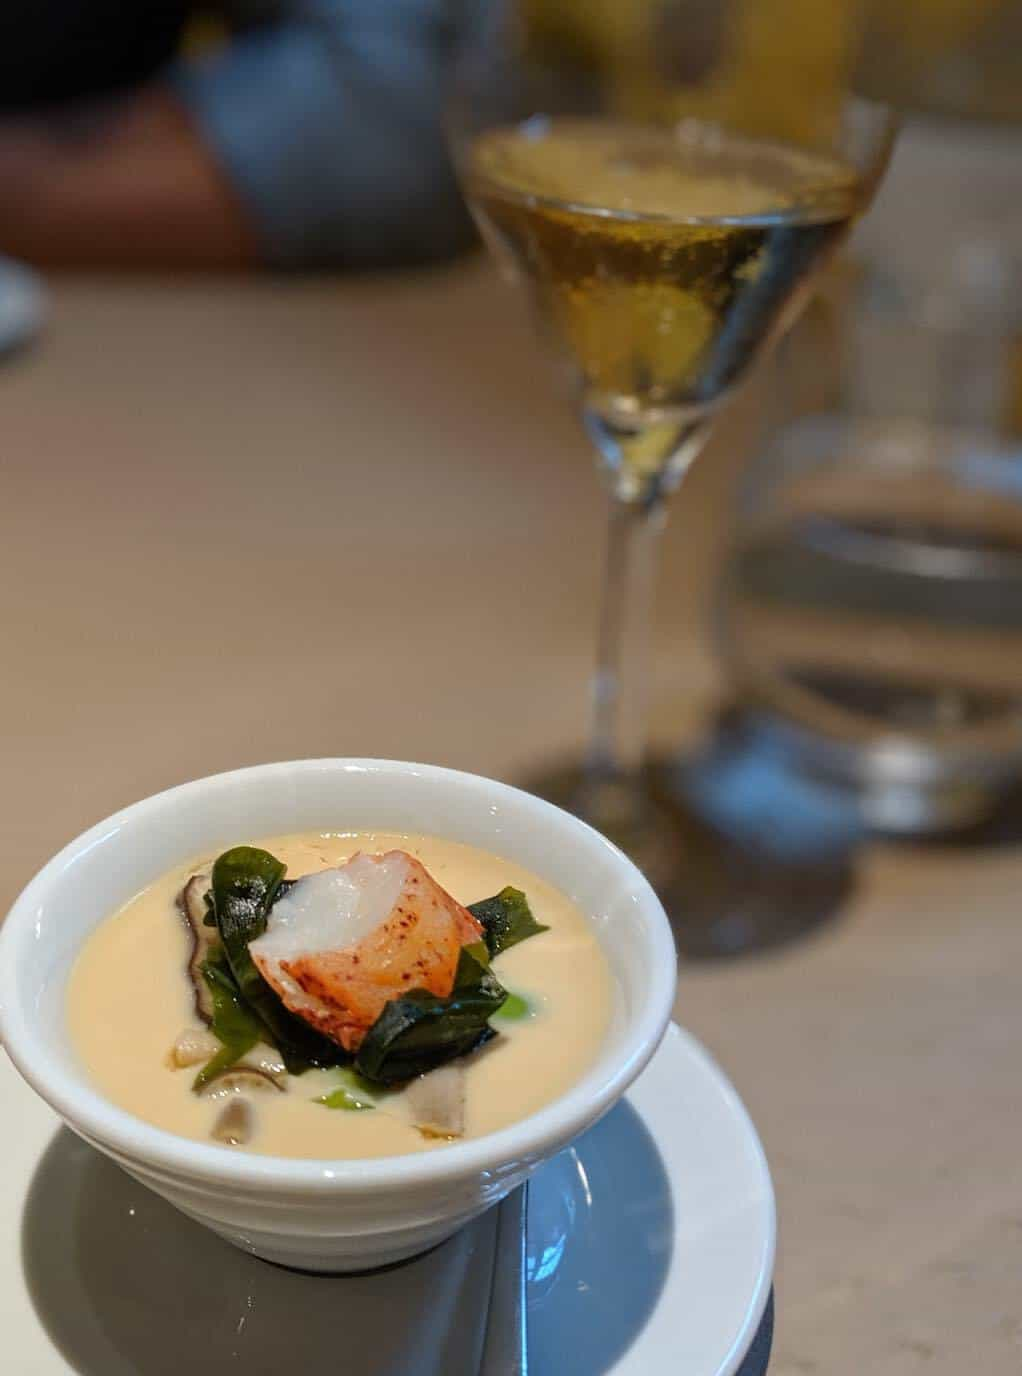 Restaurant Au Trotthus - - Gourmet Food and Wine in Alsace France